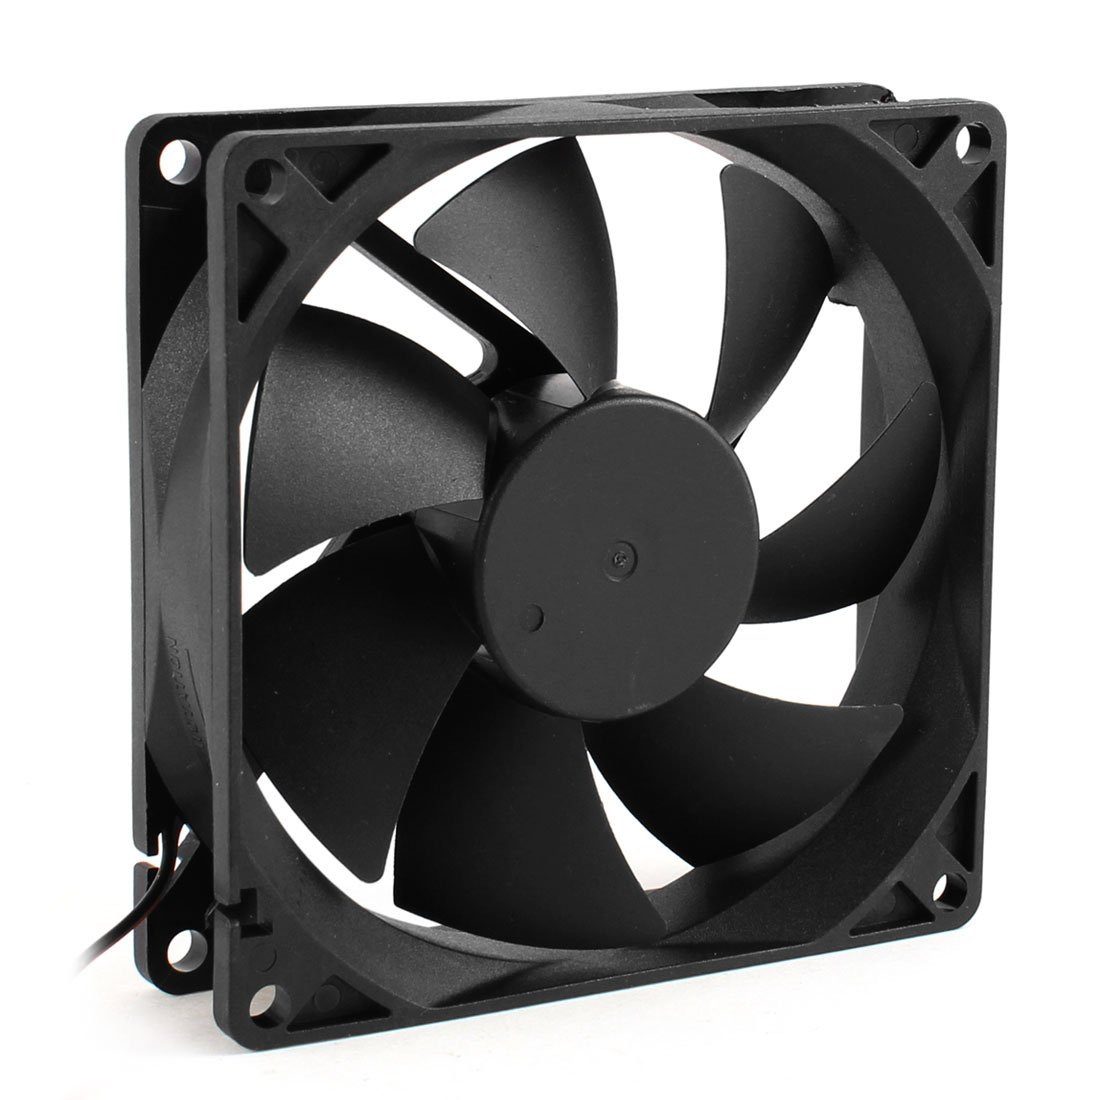 92mm x 25mm 24V 2Pin Sleeve Bearing Cooling Fan for PC Case CPU Cooler